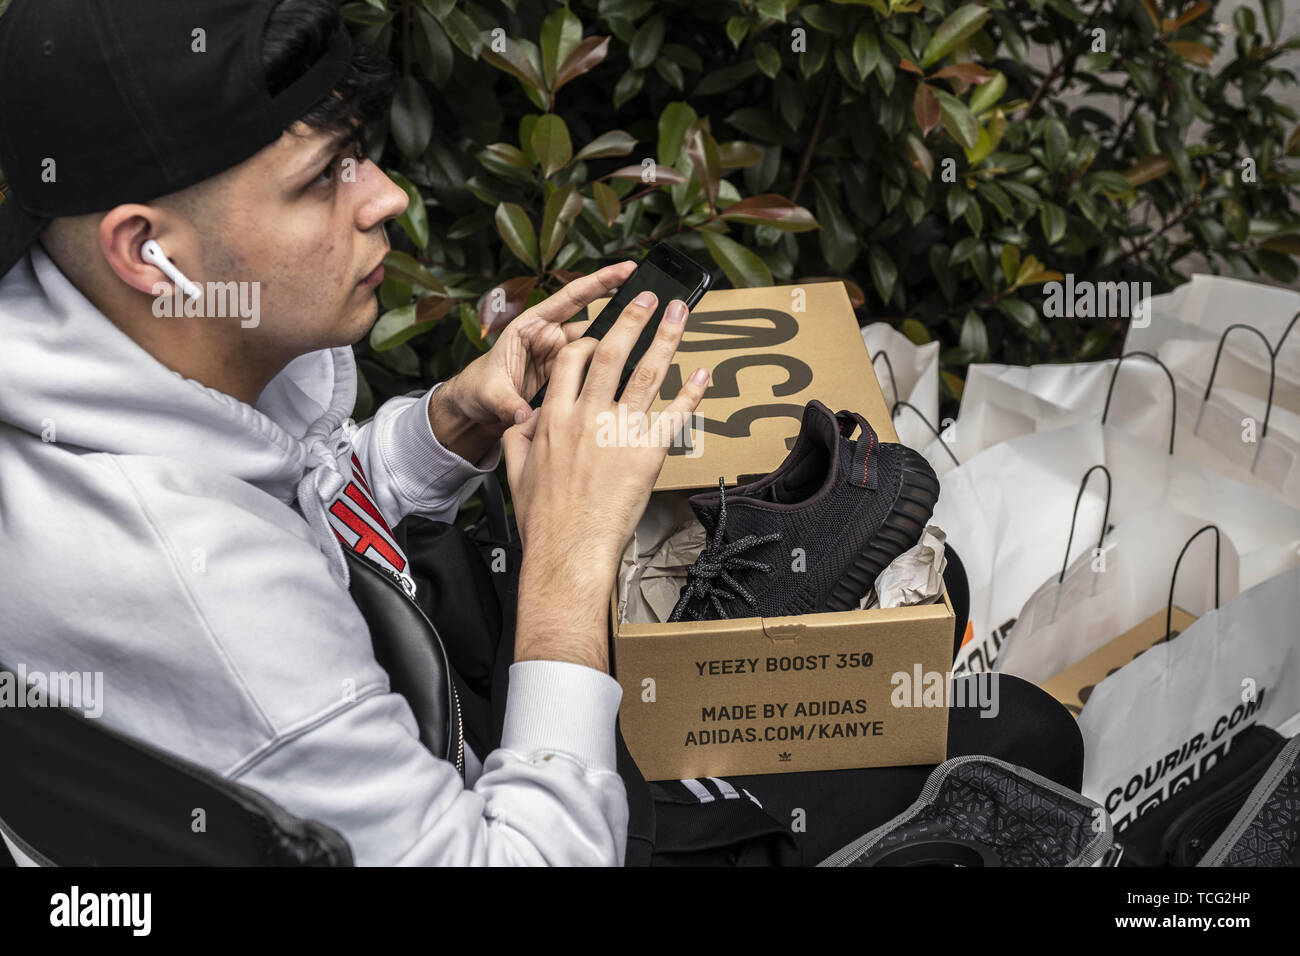 Barcelona, Catalonia, Spain. 7th June, 2019. A young man shows off his new Yeezy Boost model designed by Kanye West.The German manufacturer of sports shoes Adidas has launched the limited edition of the Yeezy Boost 350 sports shoe model designed by rapper Kanye West. The limited production of this model has made many young people crowd in front of stores and resellers to be one of the lucky ones. Credit: Paco Freire/SOPA Images/ZUMA Wire/Alamy Live News - Stock Image